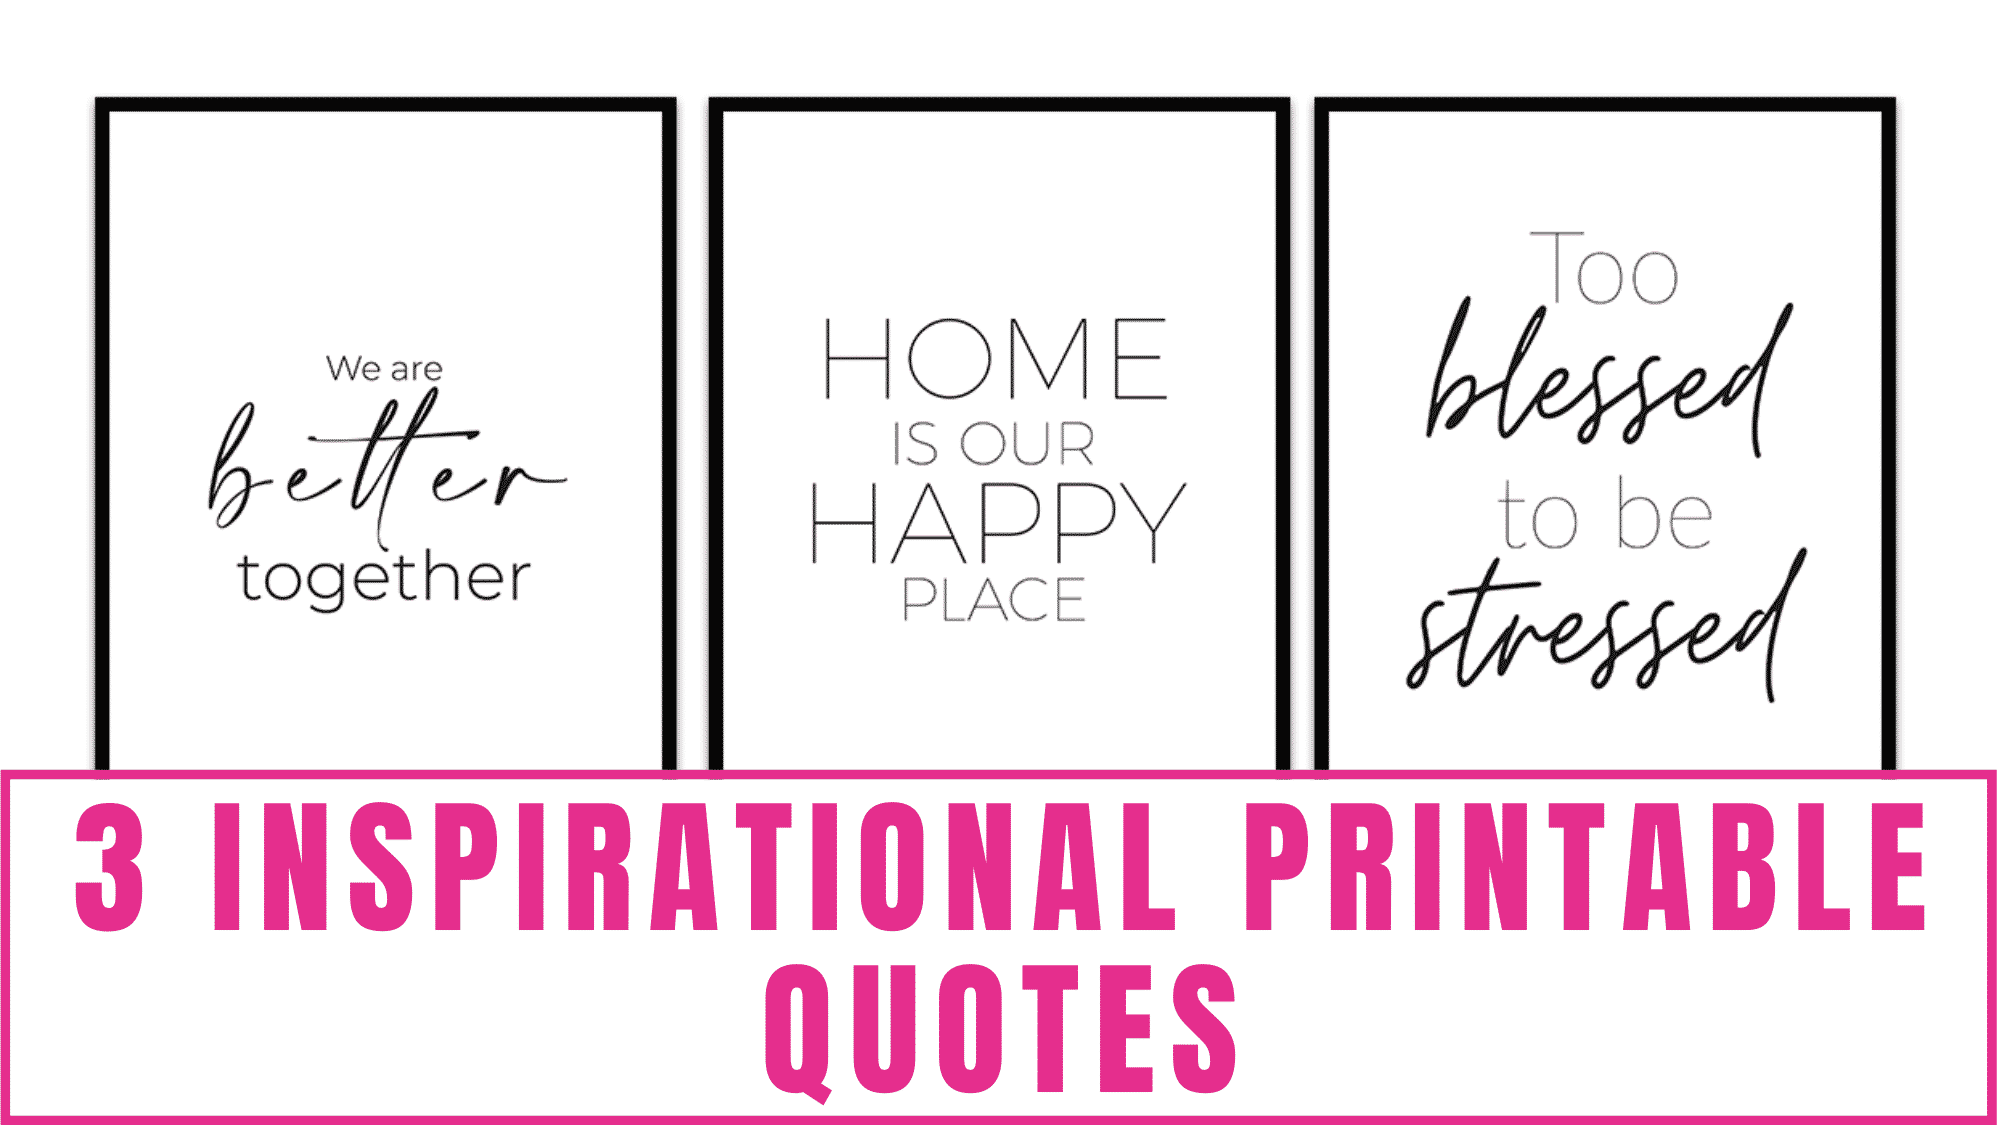 These inspirational printable quotes are an easy and inexpensive way to add a touch of positivity to your home's décor. These printable quotes also make great printable wall art quotes as well.